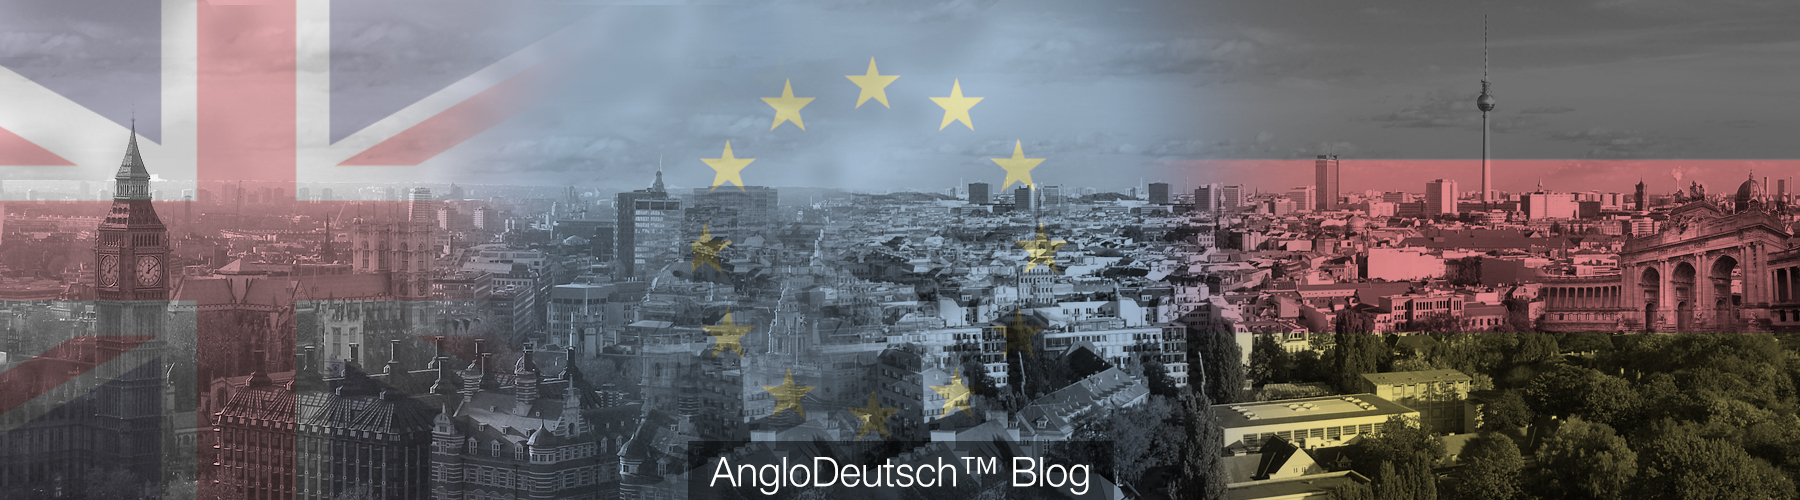 AngloDeutsch Blog